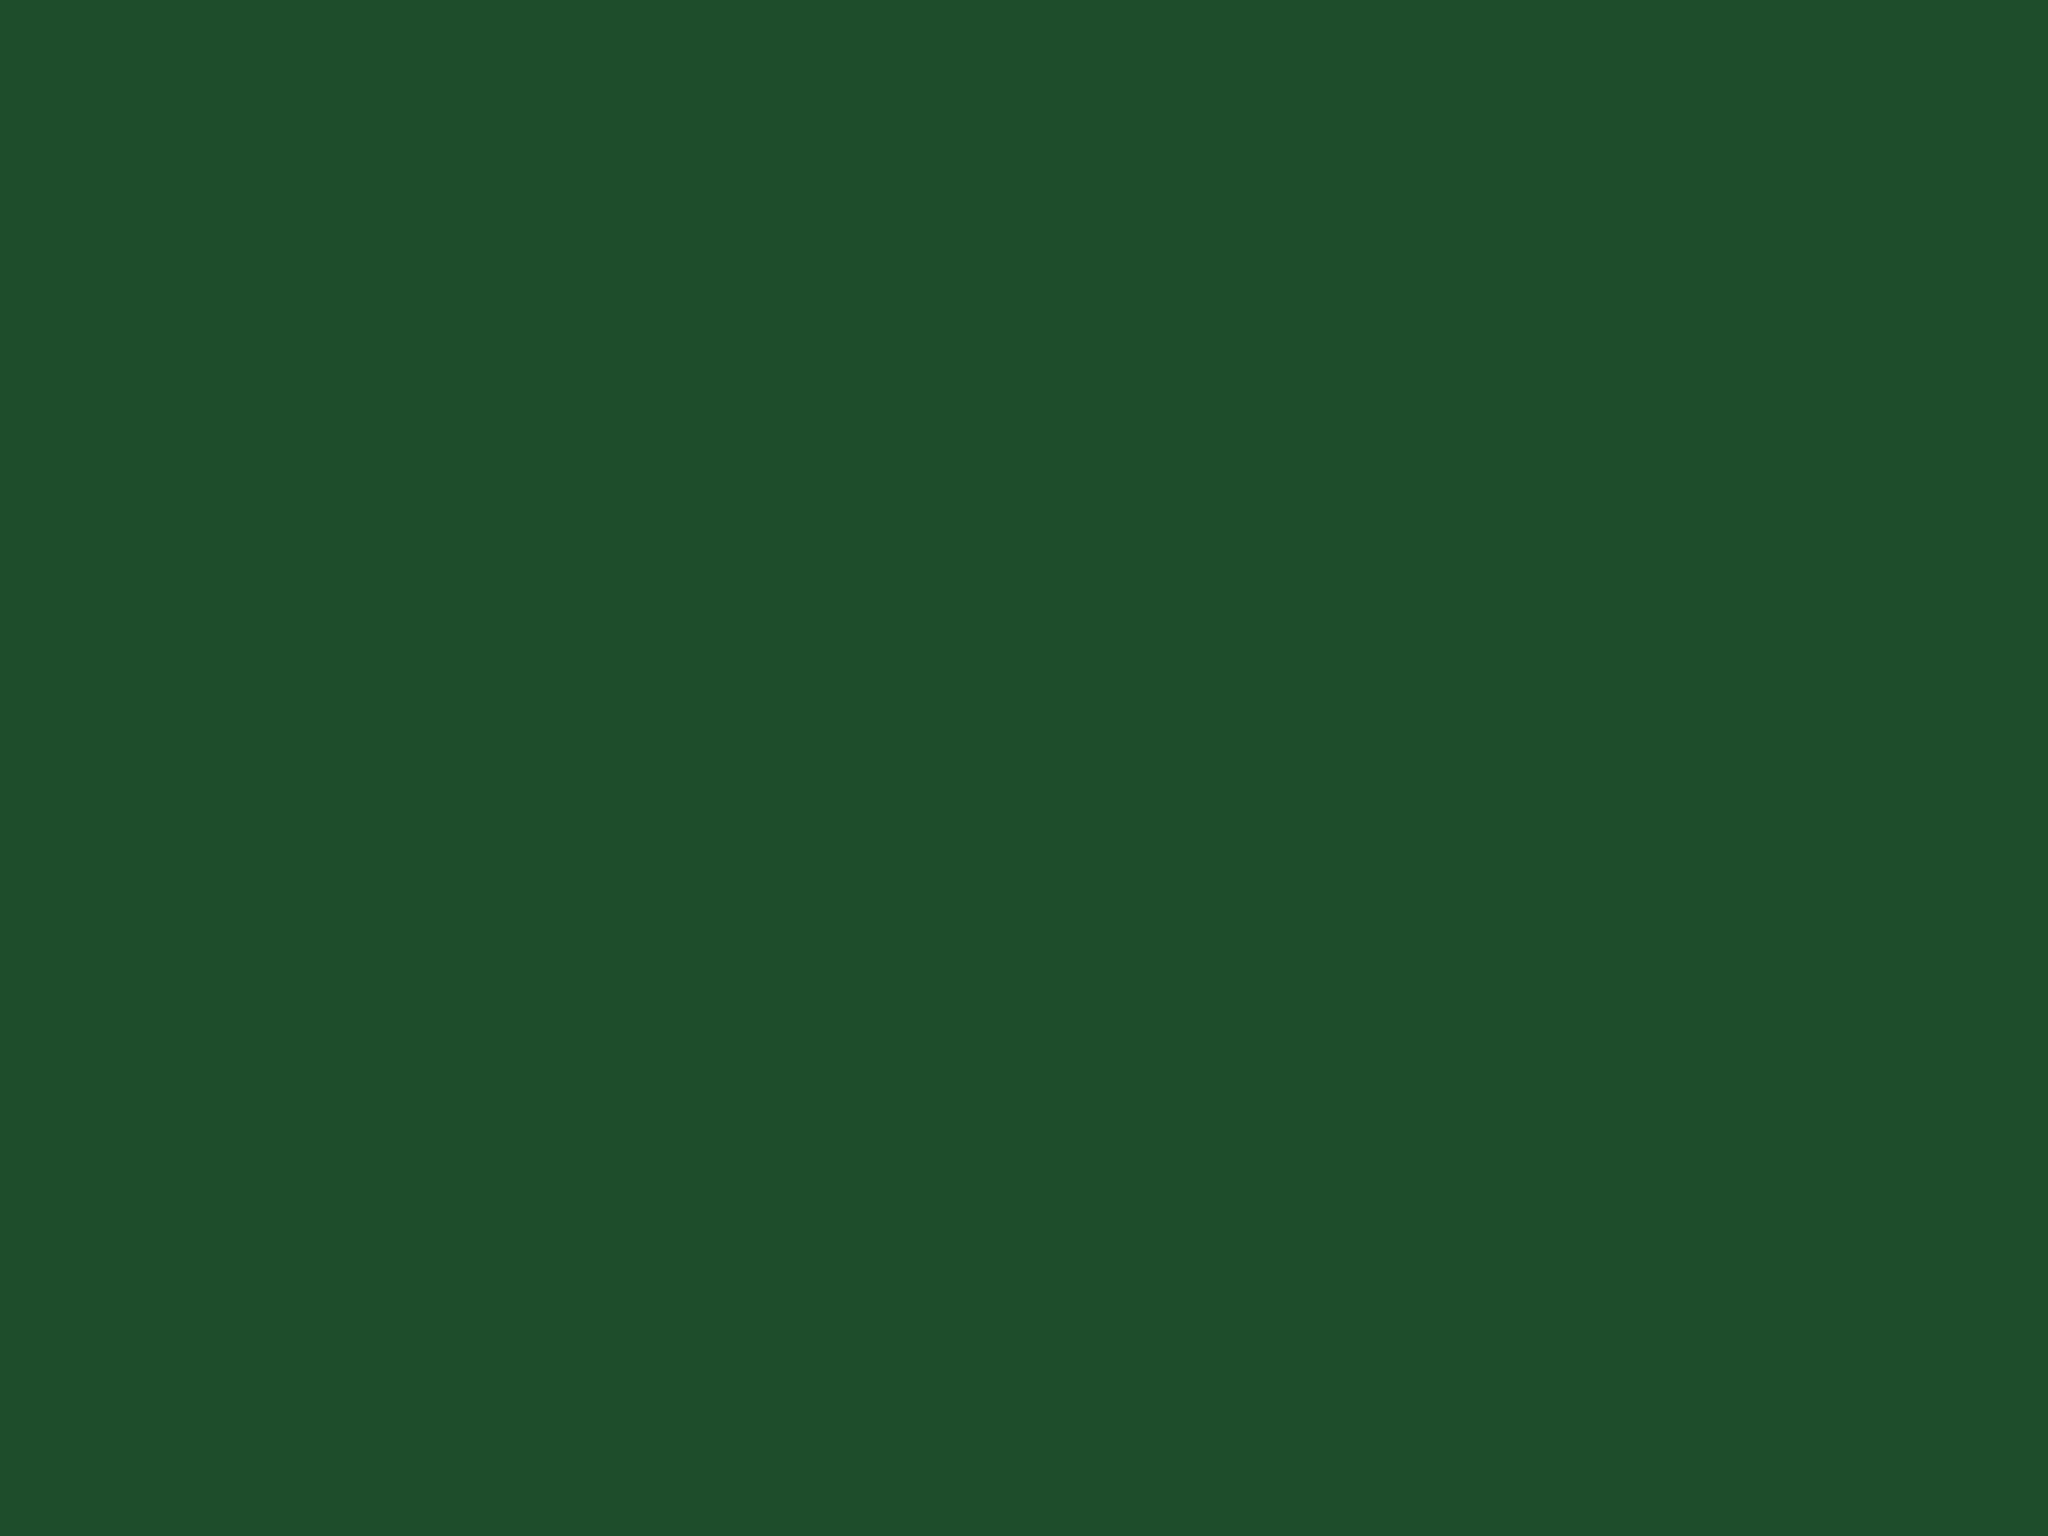 2048x1536 Cal Poly Green Solid Color Background